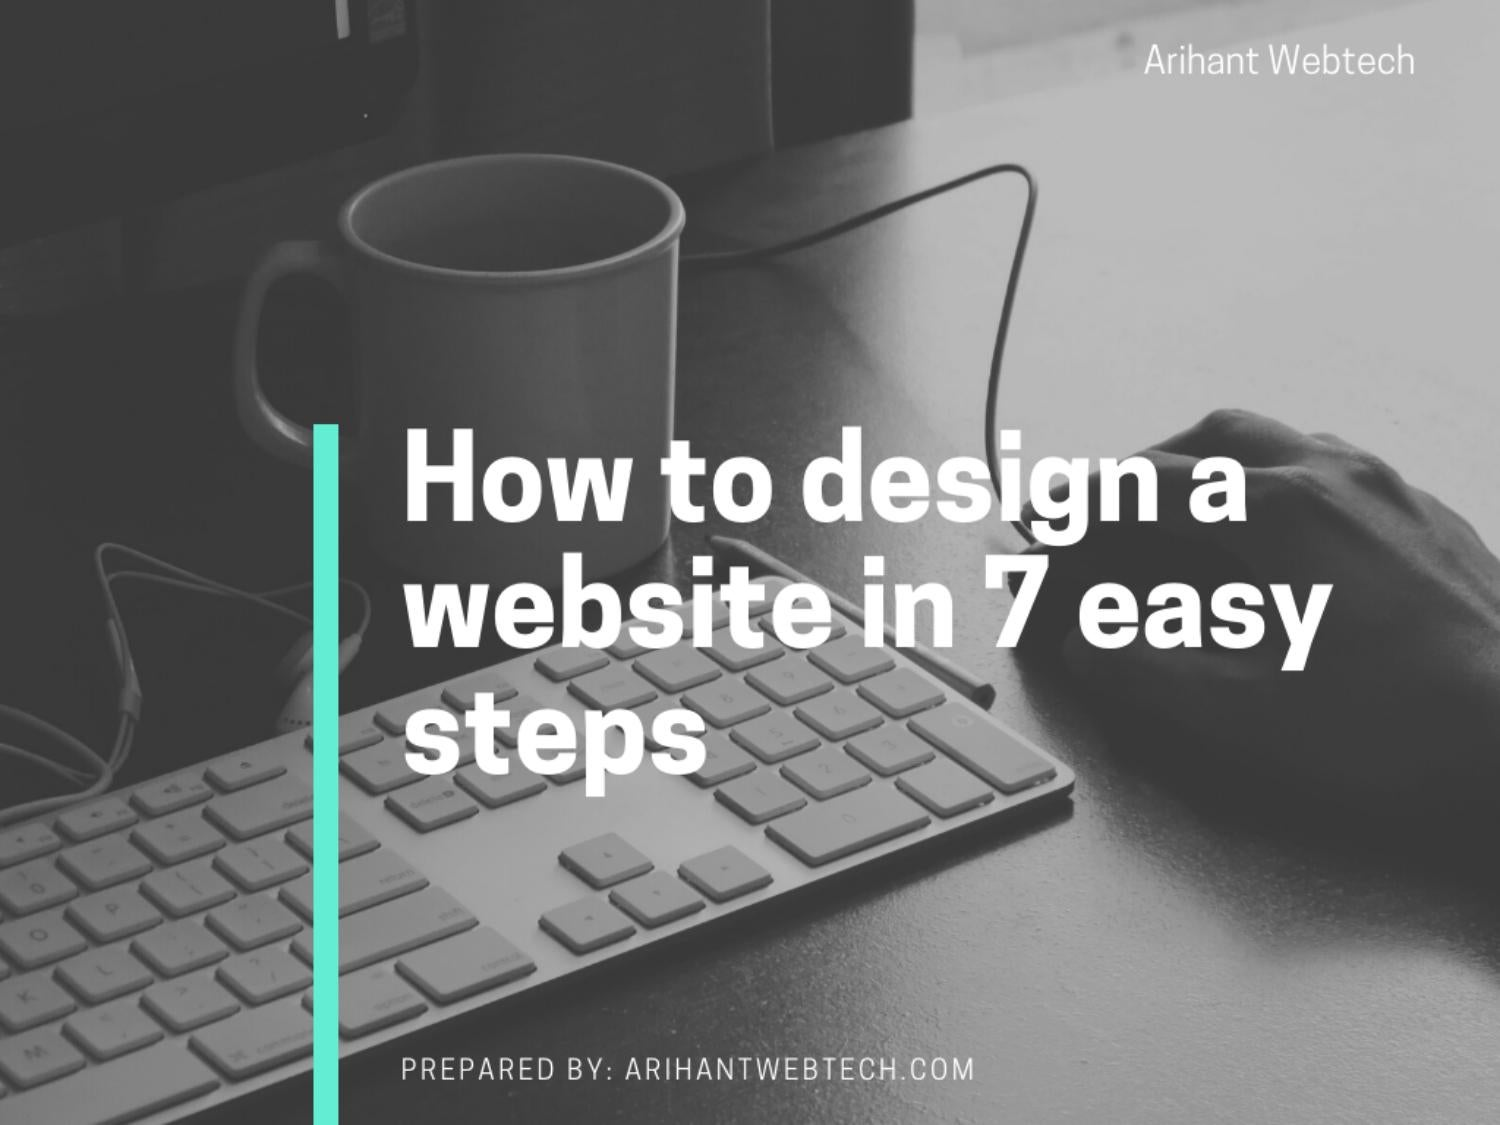 How to design a website in 7 easy steps